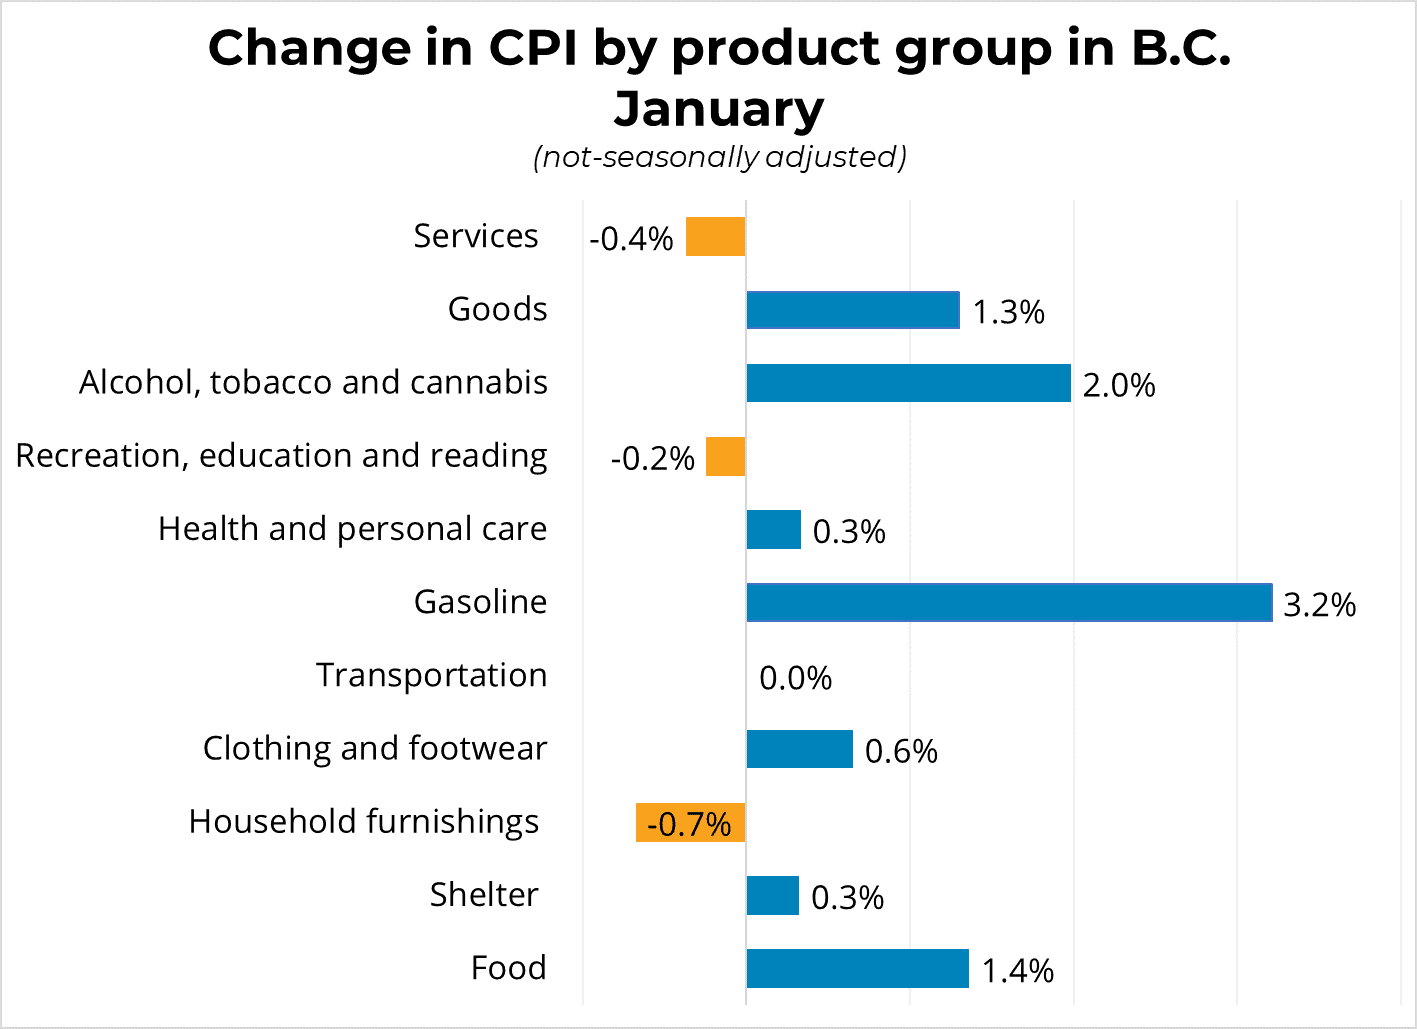 Change in BC by Product Group